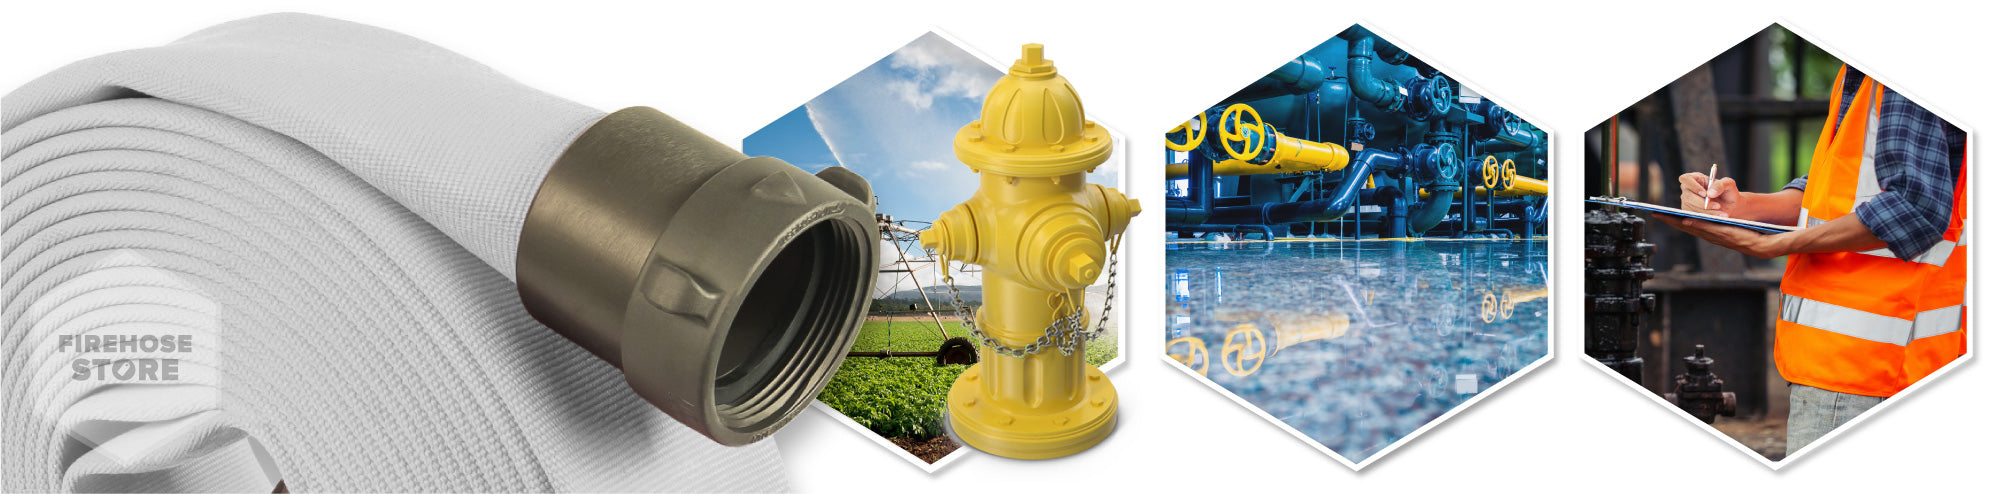 2-1-2 Inch x 50 Feet Fire Hydrant Hose Graphic Overview